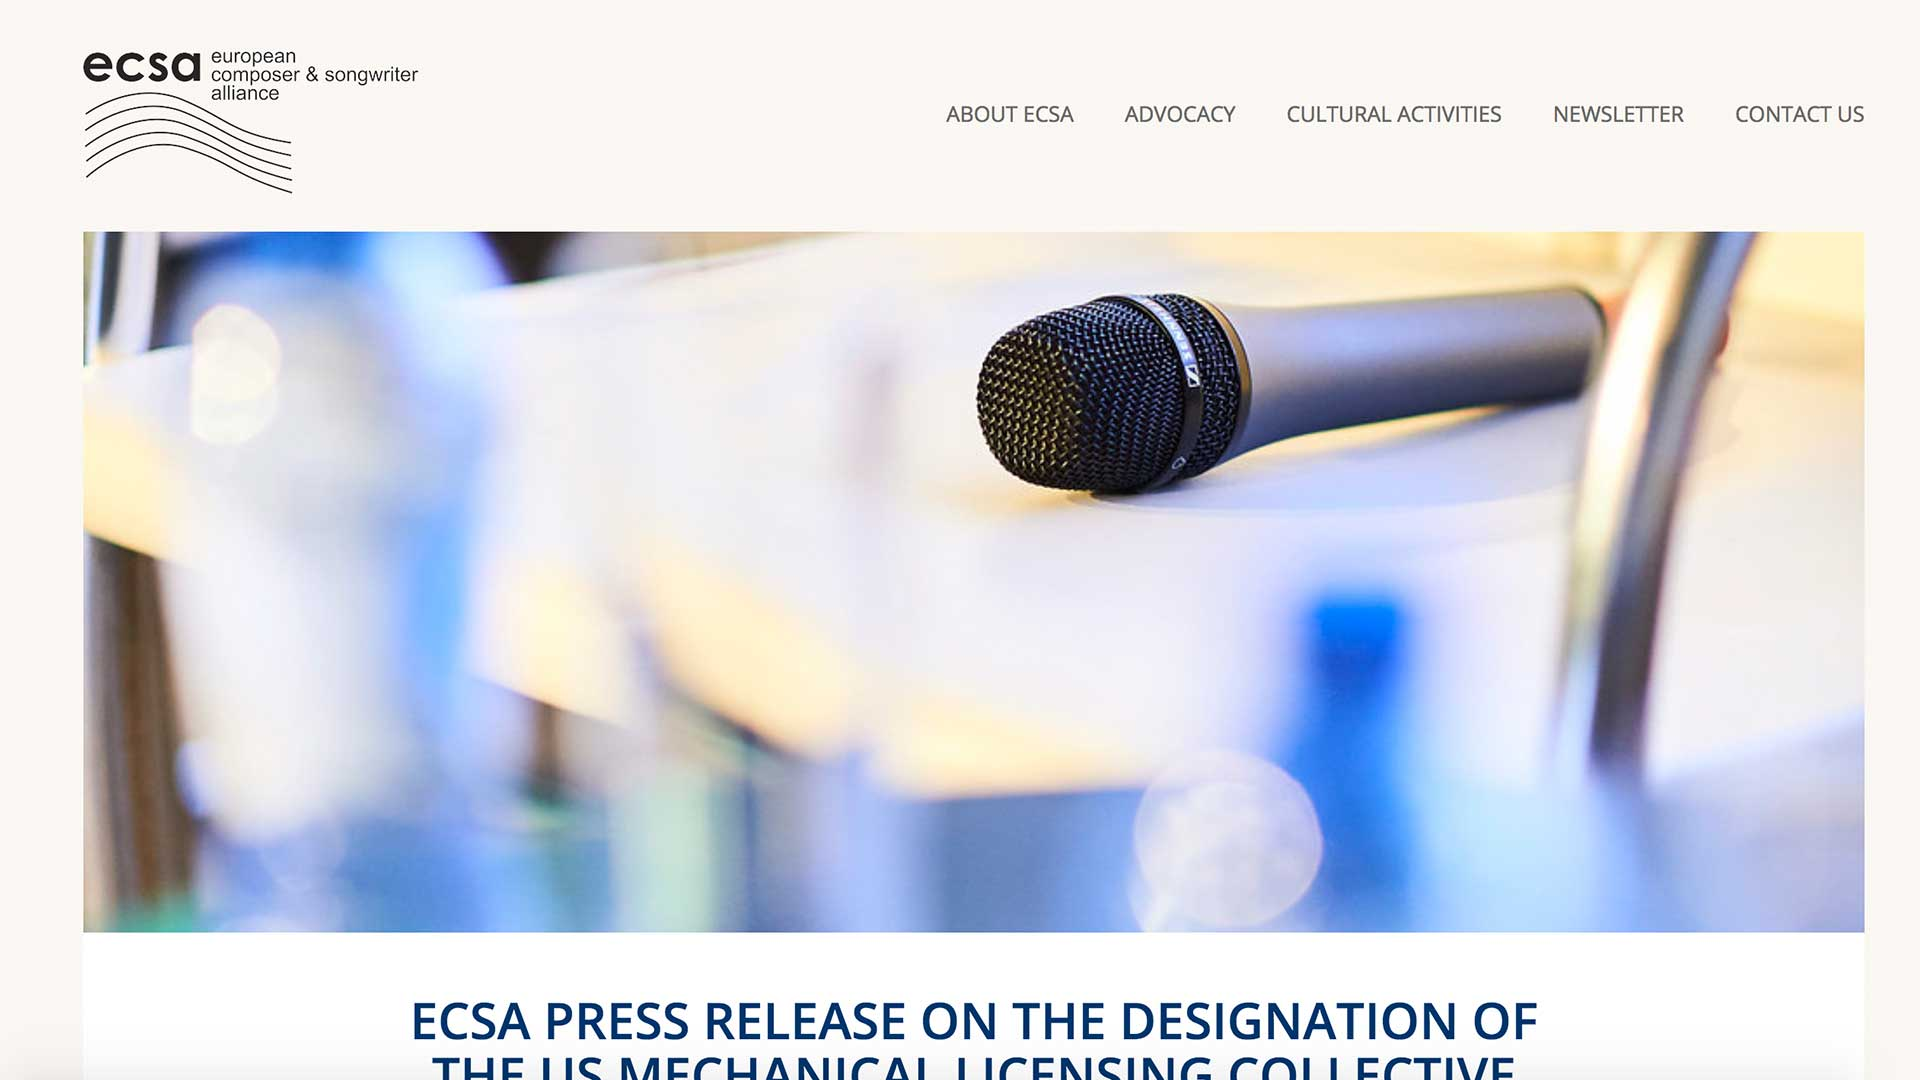 Fairness Rocks News ECSA PRESS RELEASE ON THE DESIGNATION OF THE US MECHANICAL LICENSING COLLECTIVE (MLC)